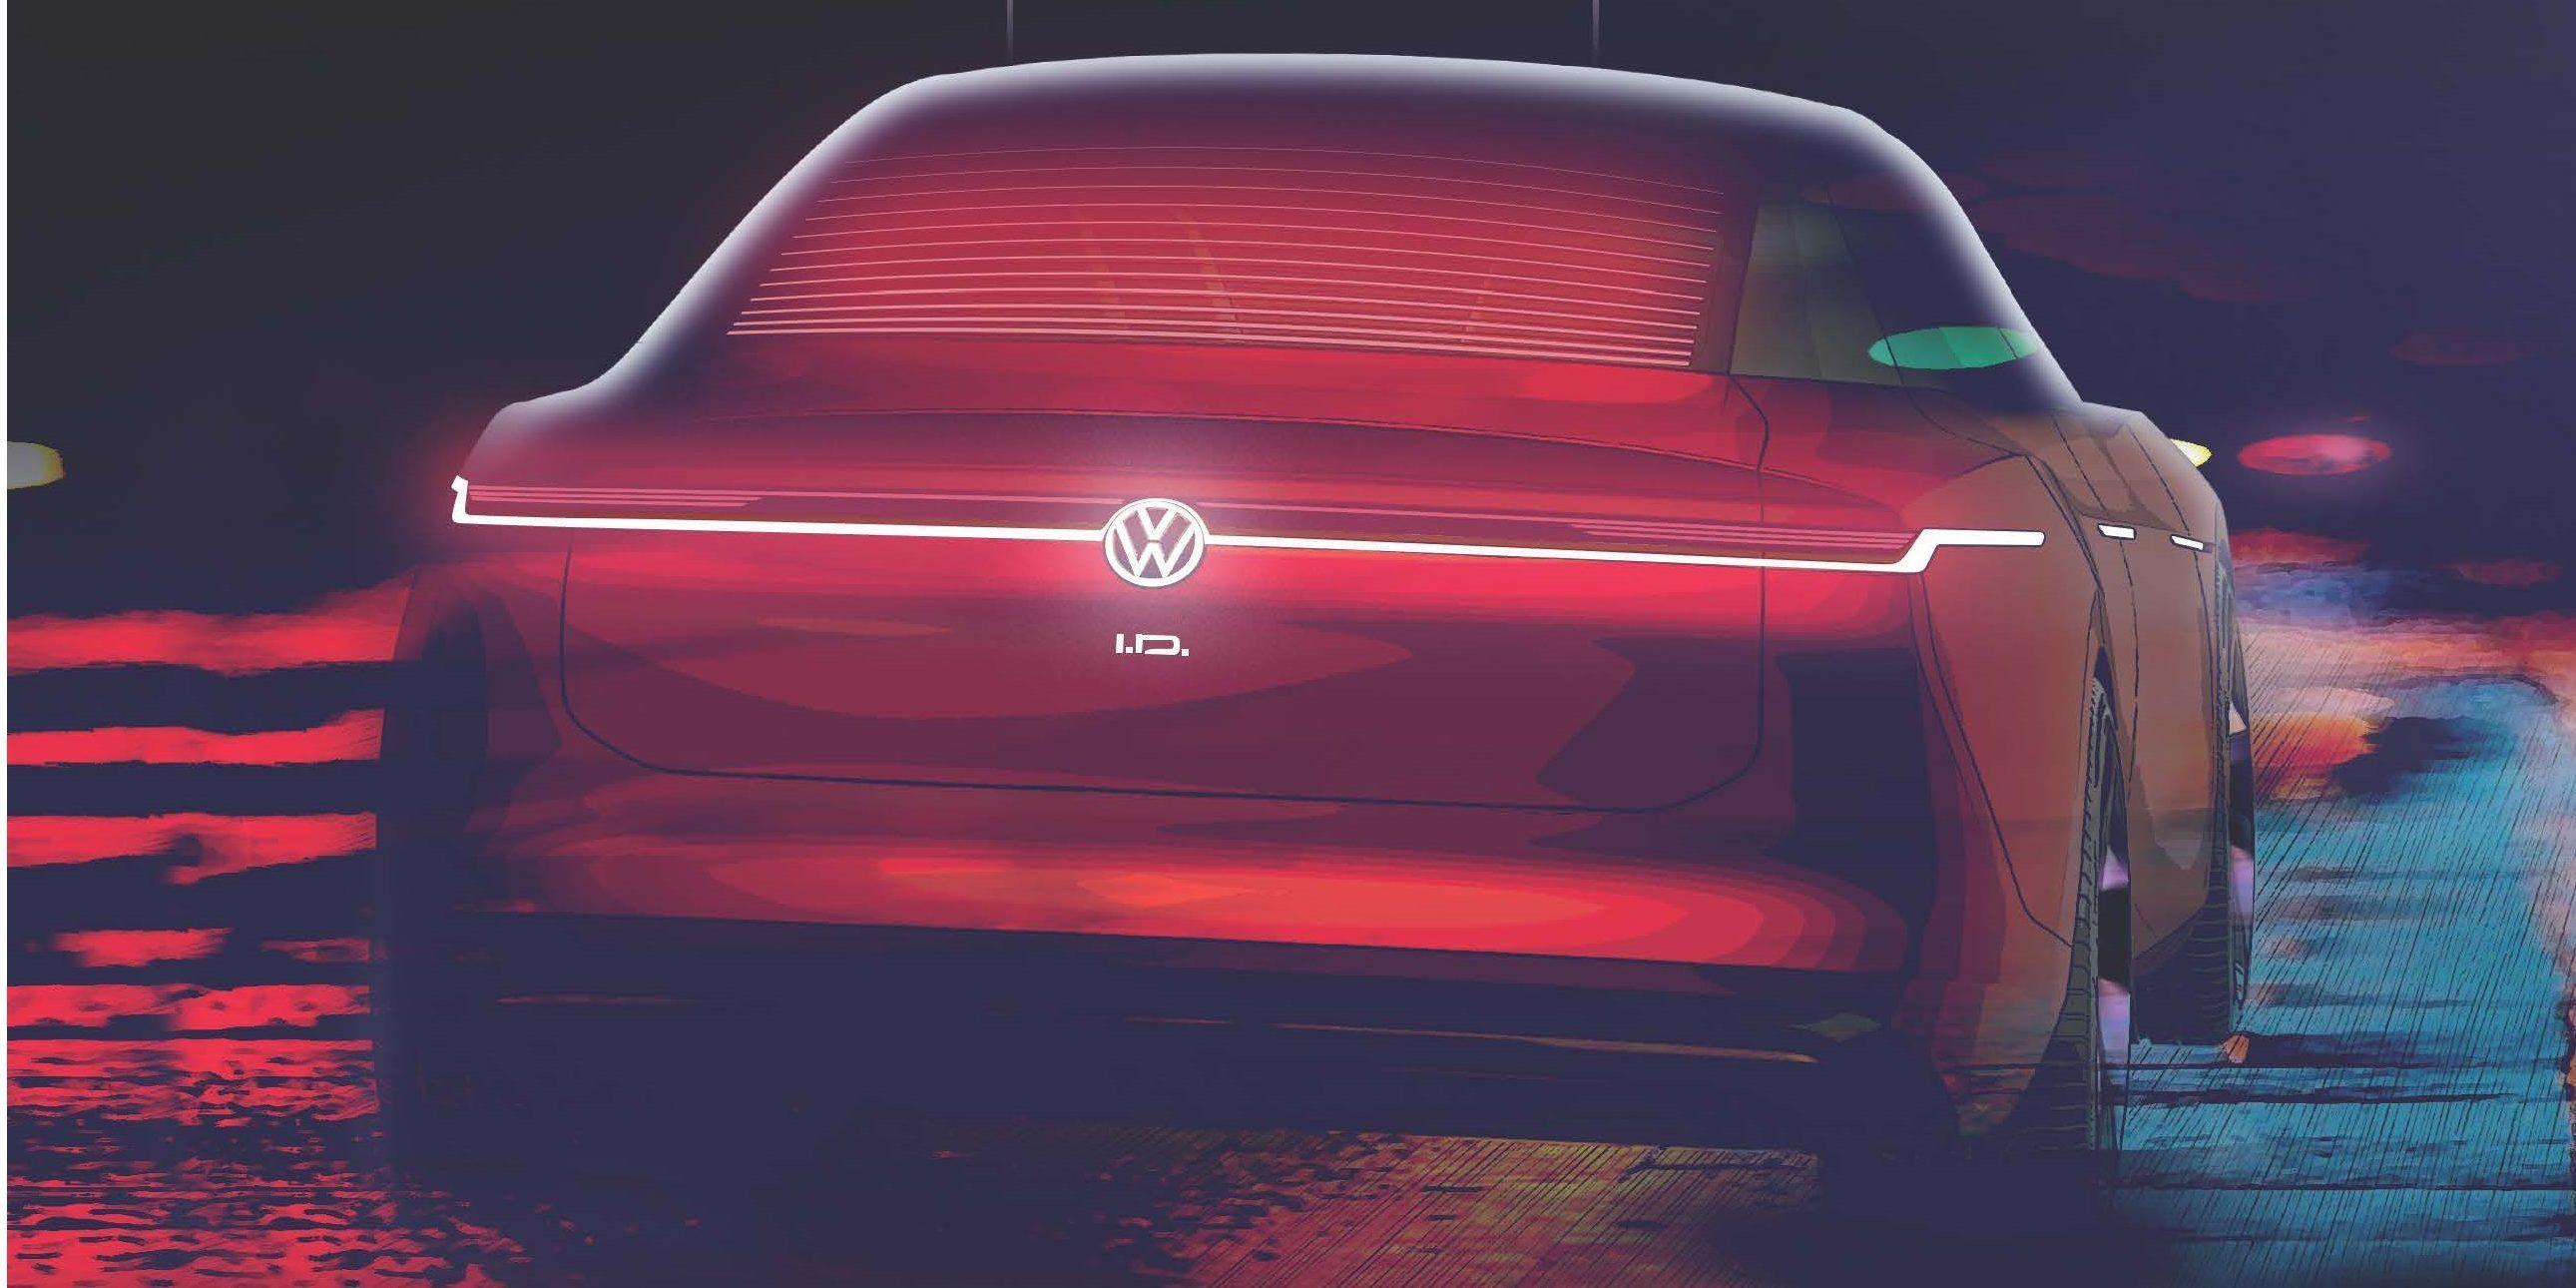 VW teases a new ID electric concept